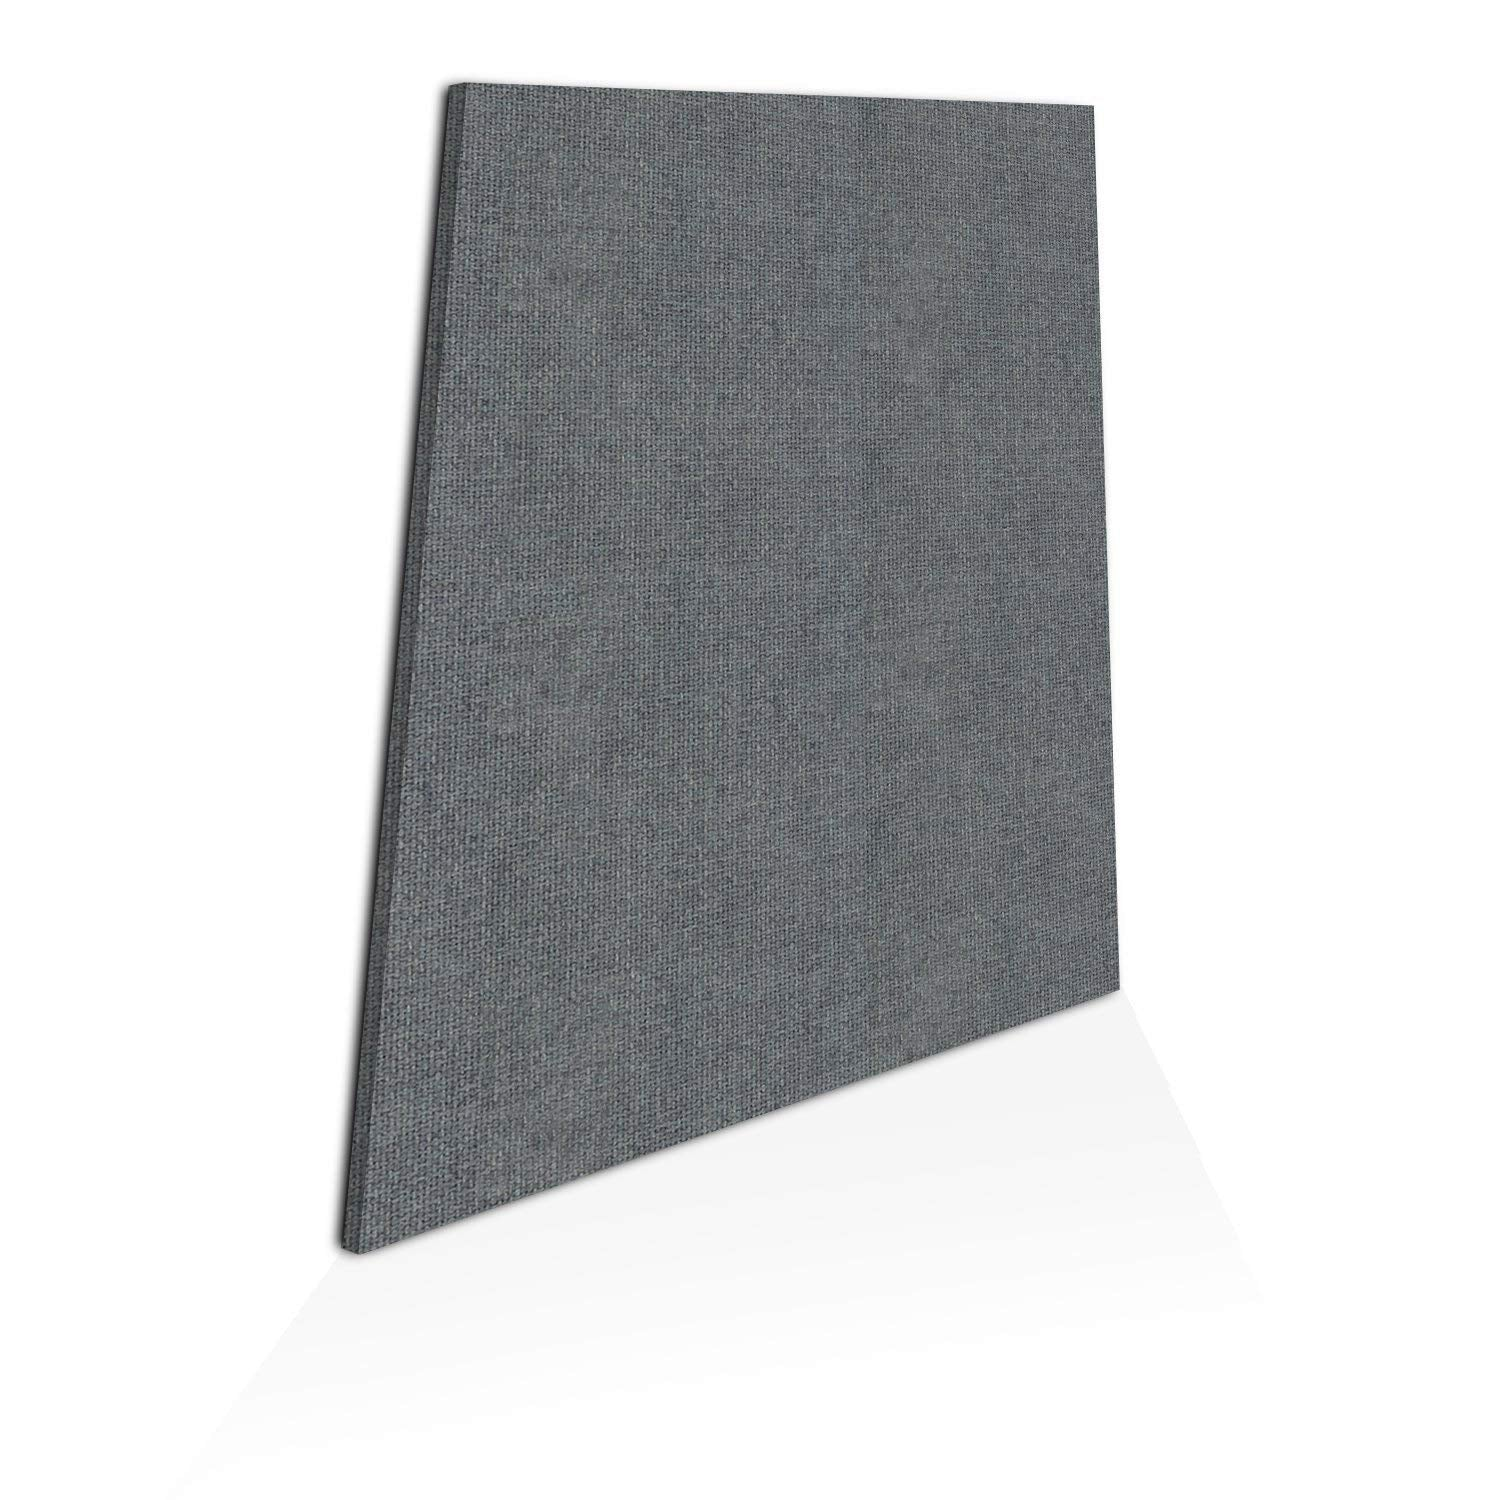 "ADW Acoustic Panel Trapezoid - 24"" base, 24"" height, 1"" thickness"